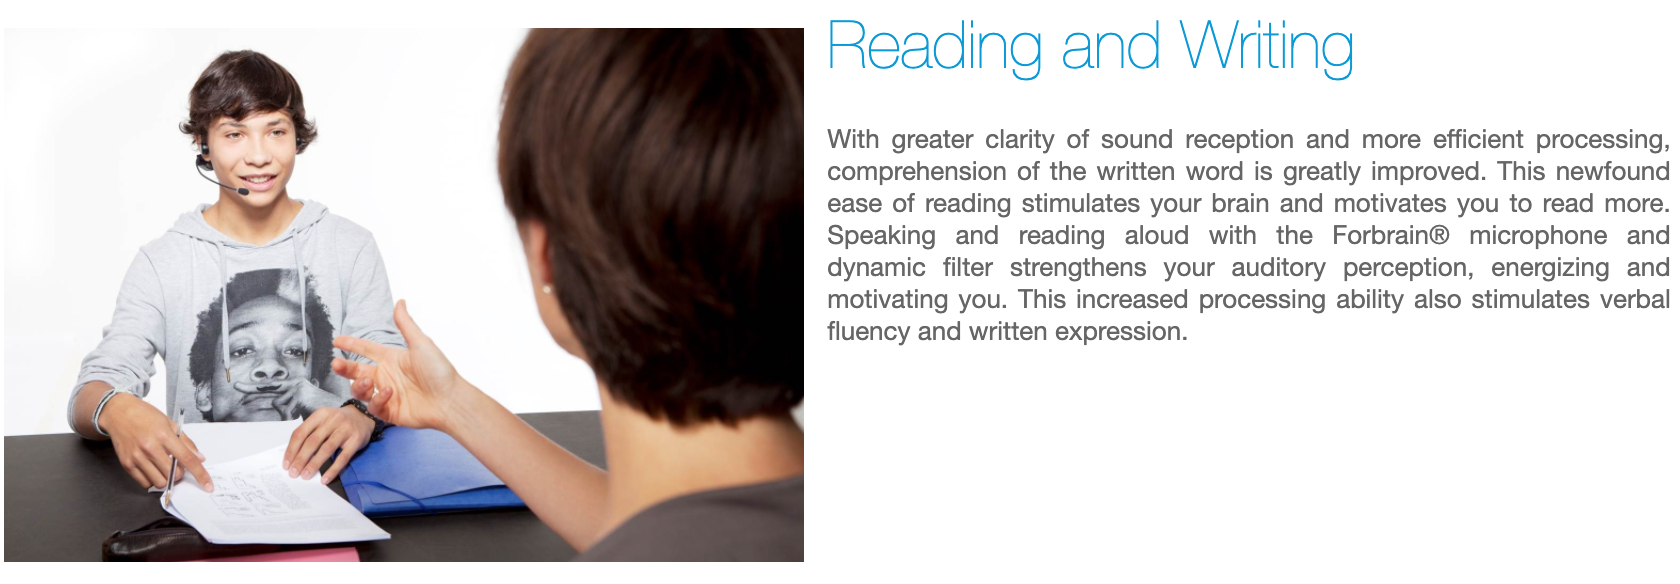 Forbrain - Reading and Writing